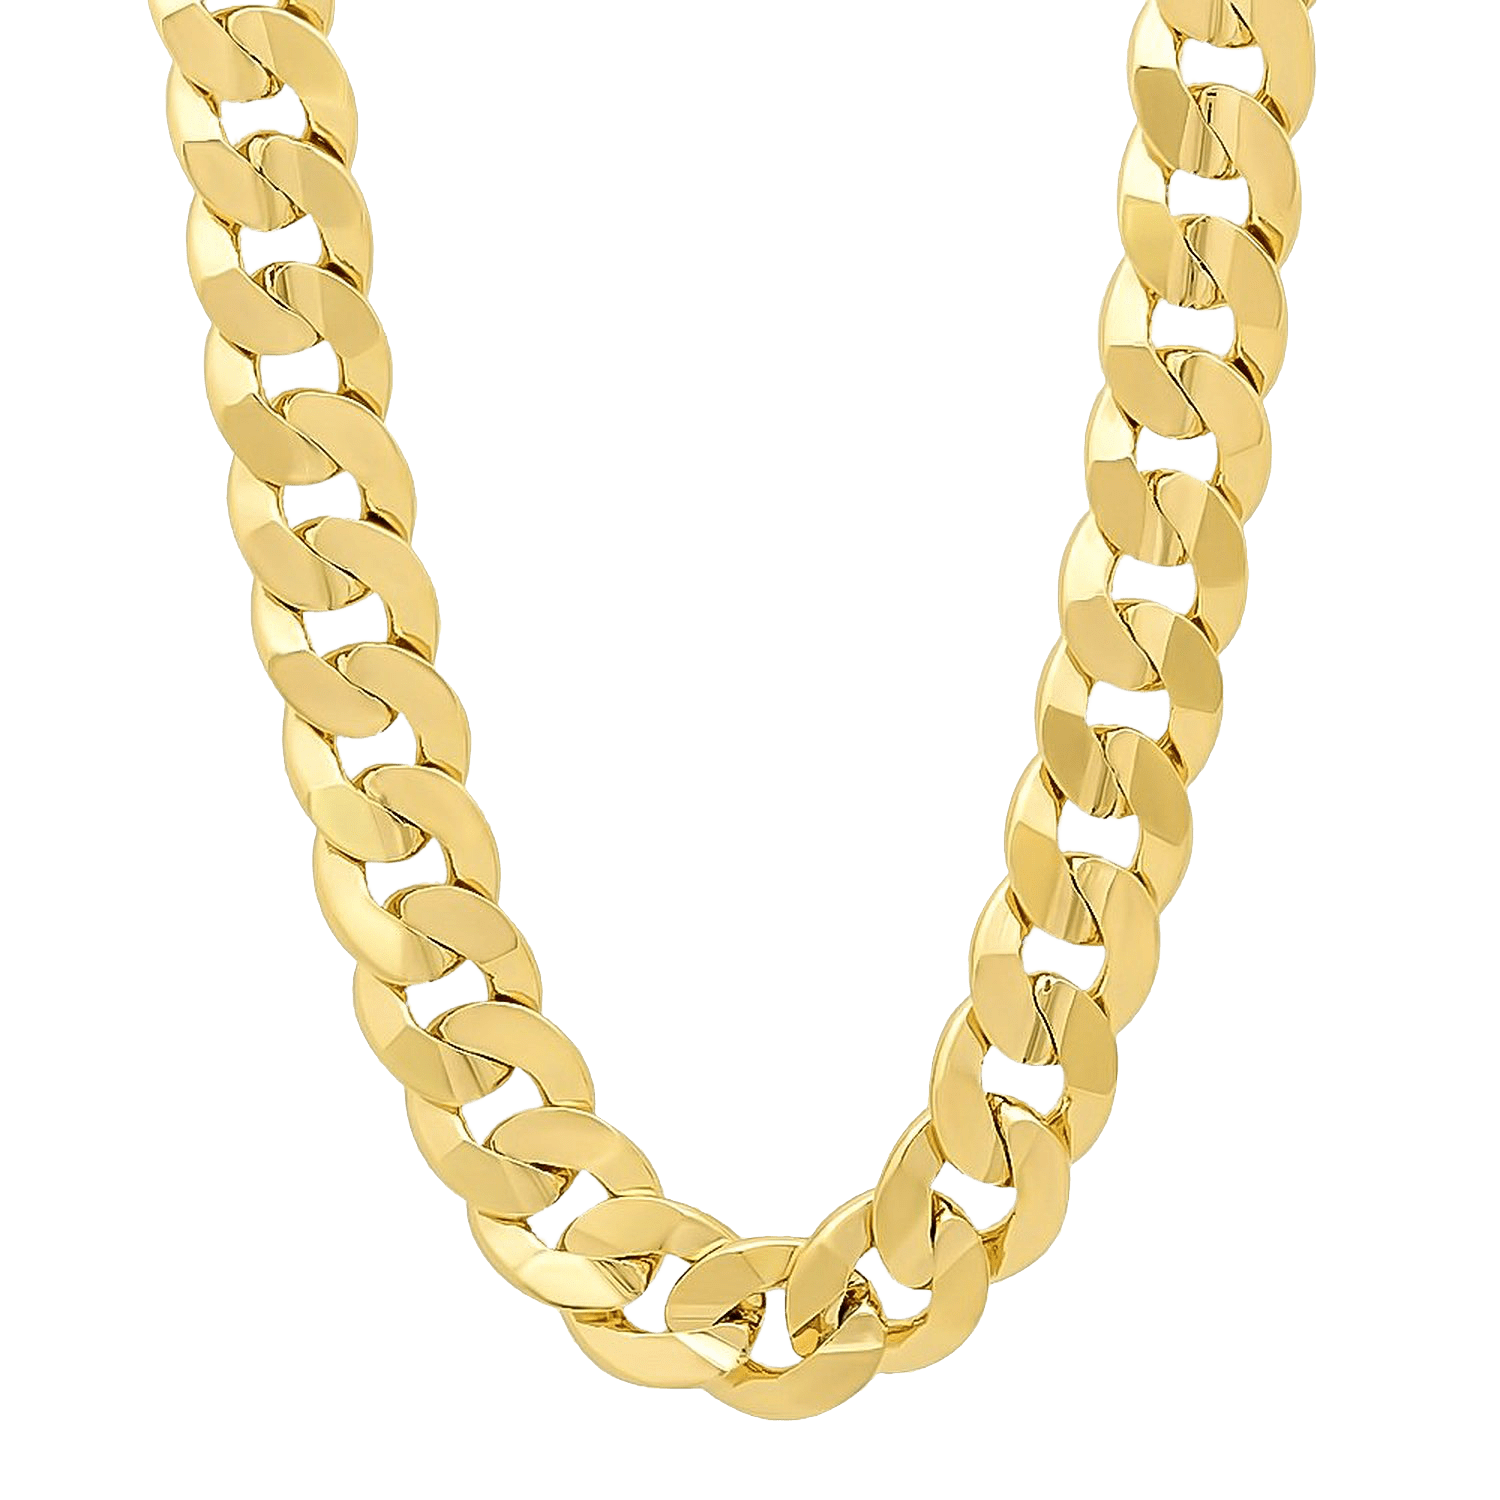 Gold money chain clipart with transparent backound png black and white Thug Life Gold Chain Dollar Rocks transparent PNG - StickPNG png black and white